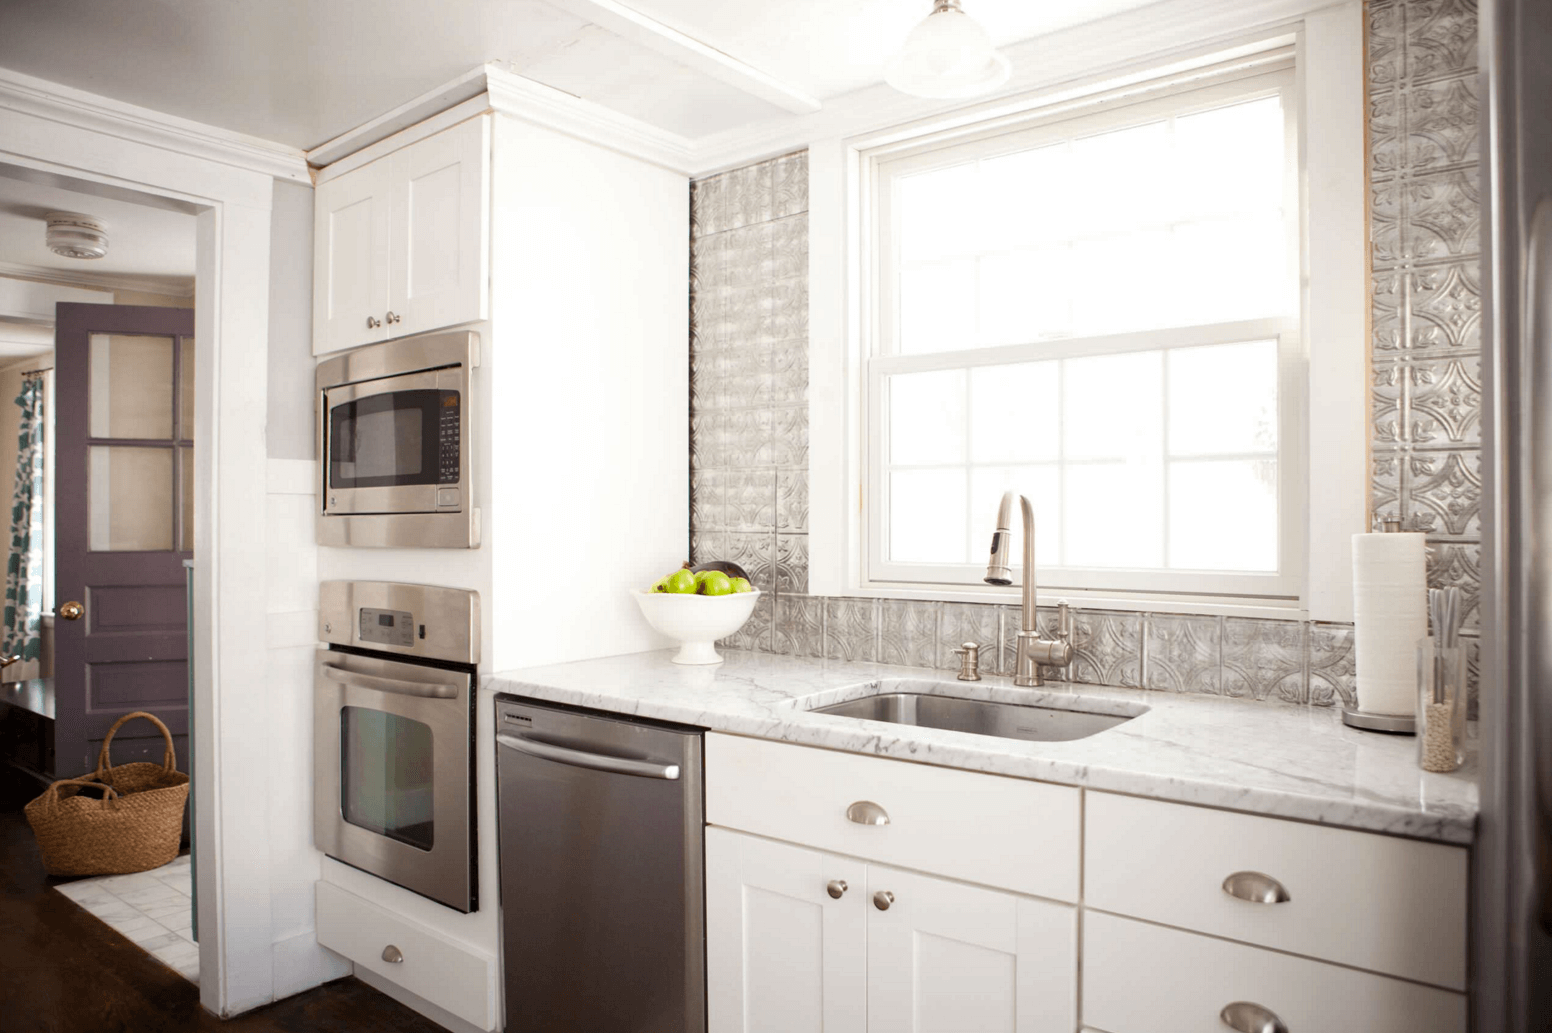 - 5 Ways To Redo Kitchen Backsplash (Without Tearing It Out)